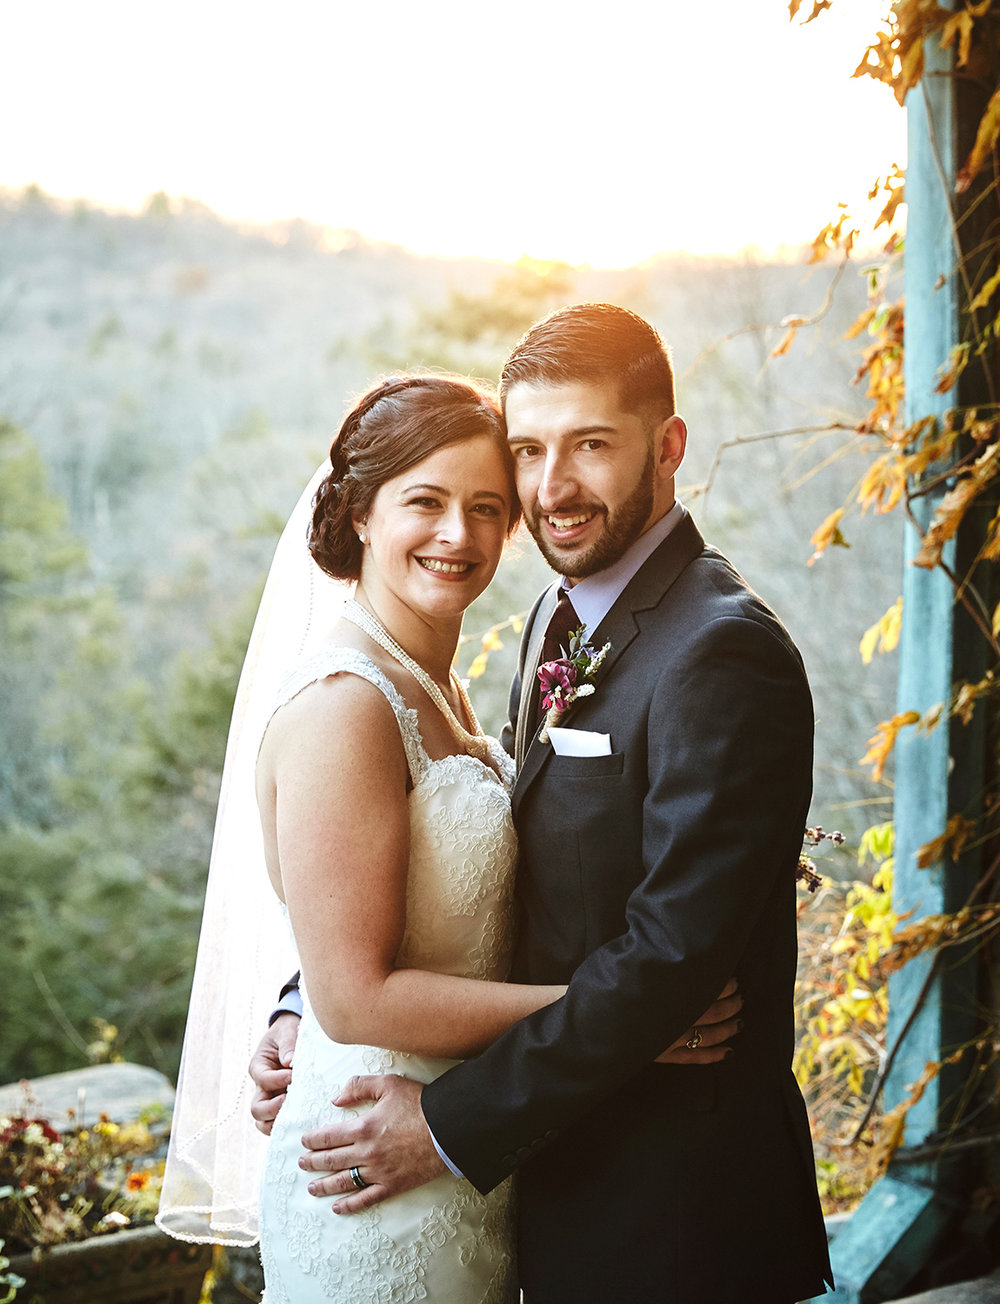 161119_ArrowParkLake&LodgeWedding_By_BriJohnsonWeddings_0128.jpg